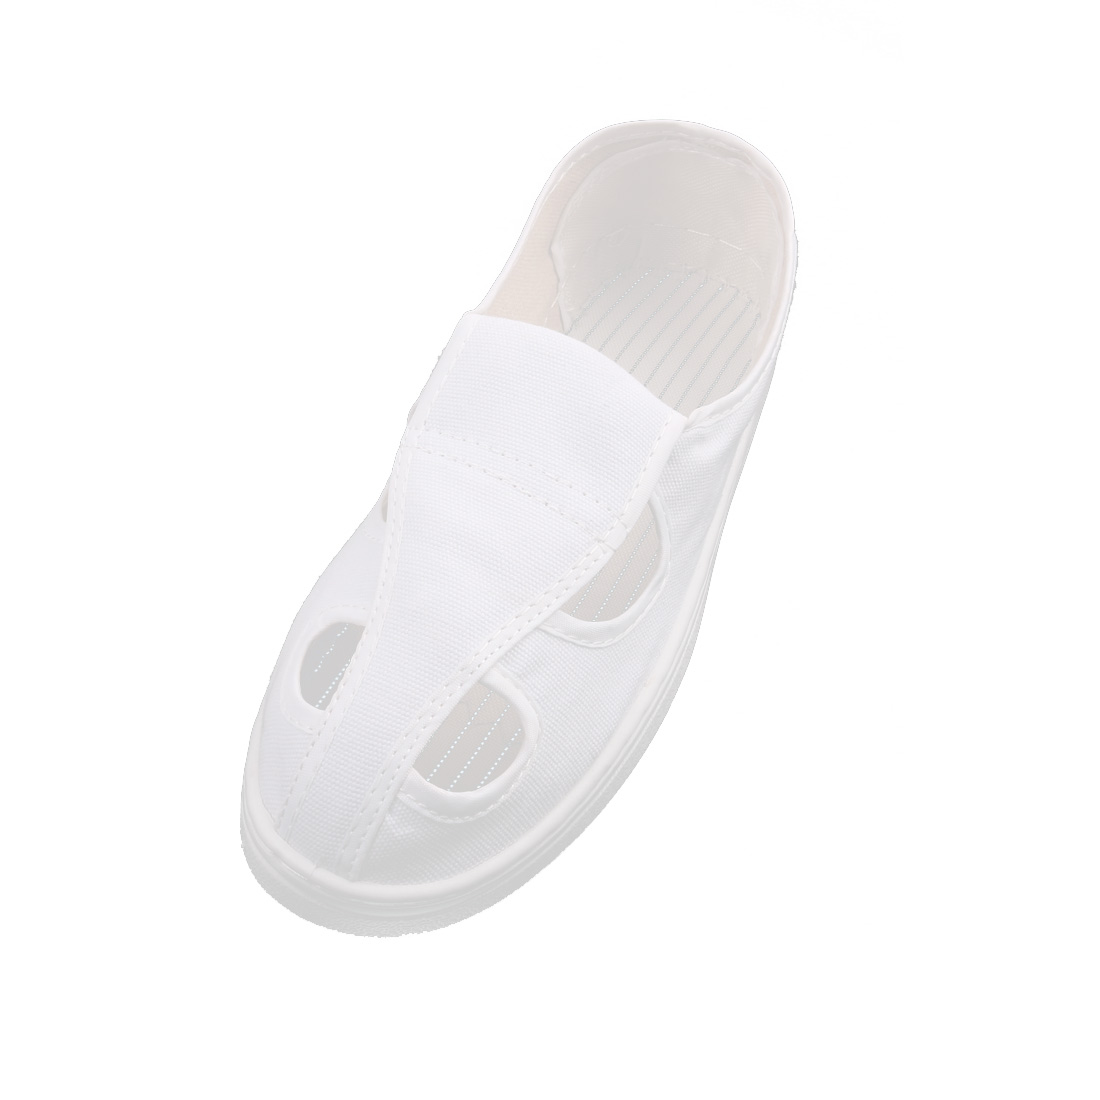 US5 UK3 EU34 PU Soft Bottom Nonslip Flat Sole Anti-static 4-Hole Canvas Shoes White